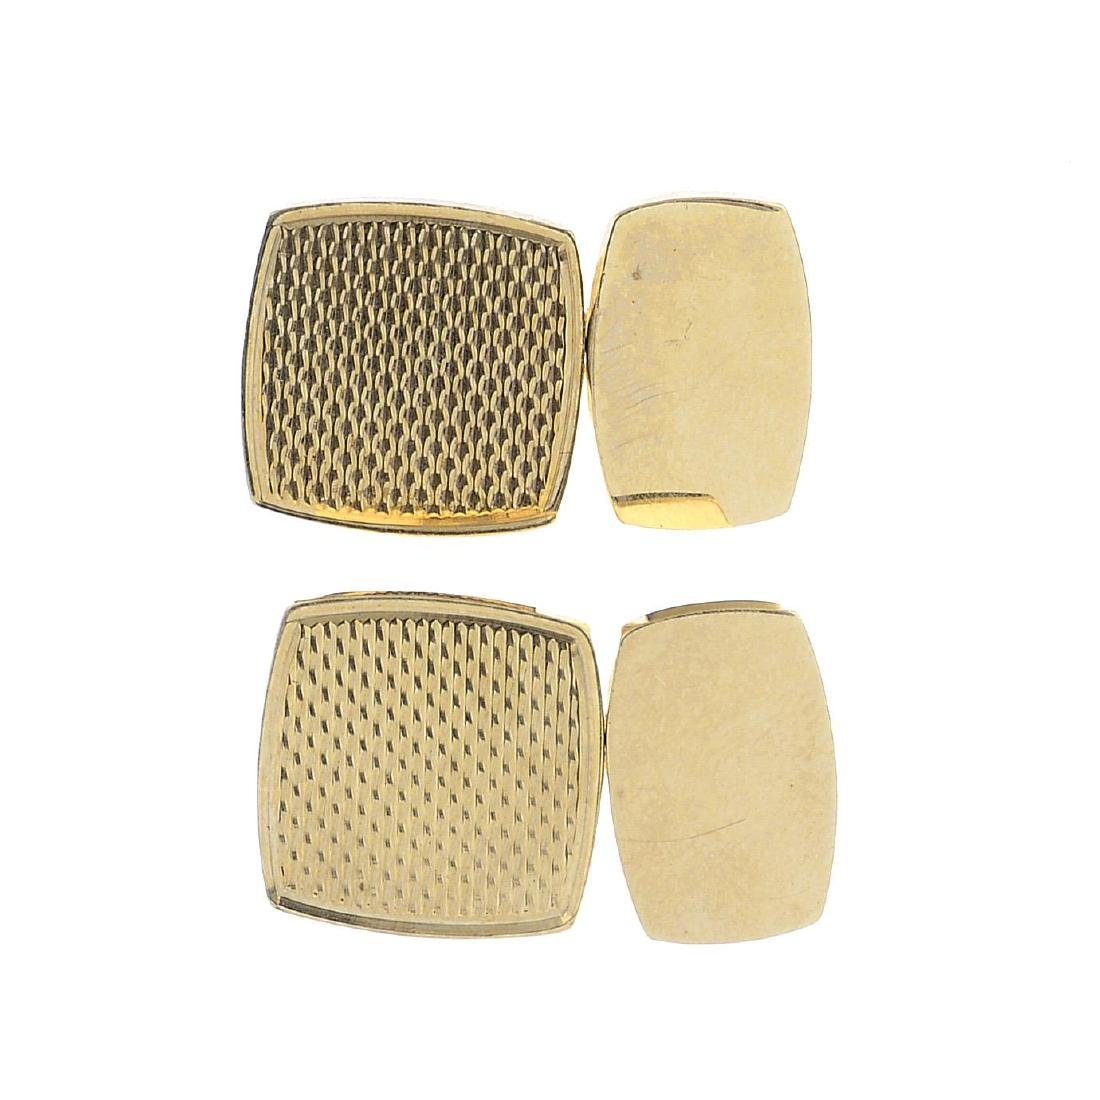 A pair of 9ct gold cufflinks. Each designed as a